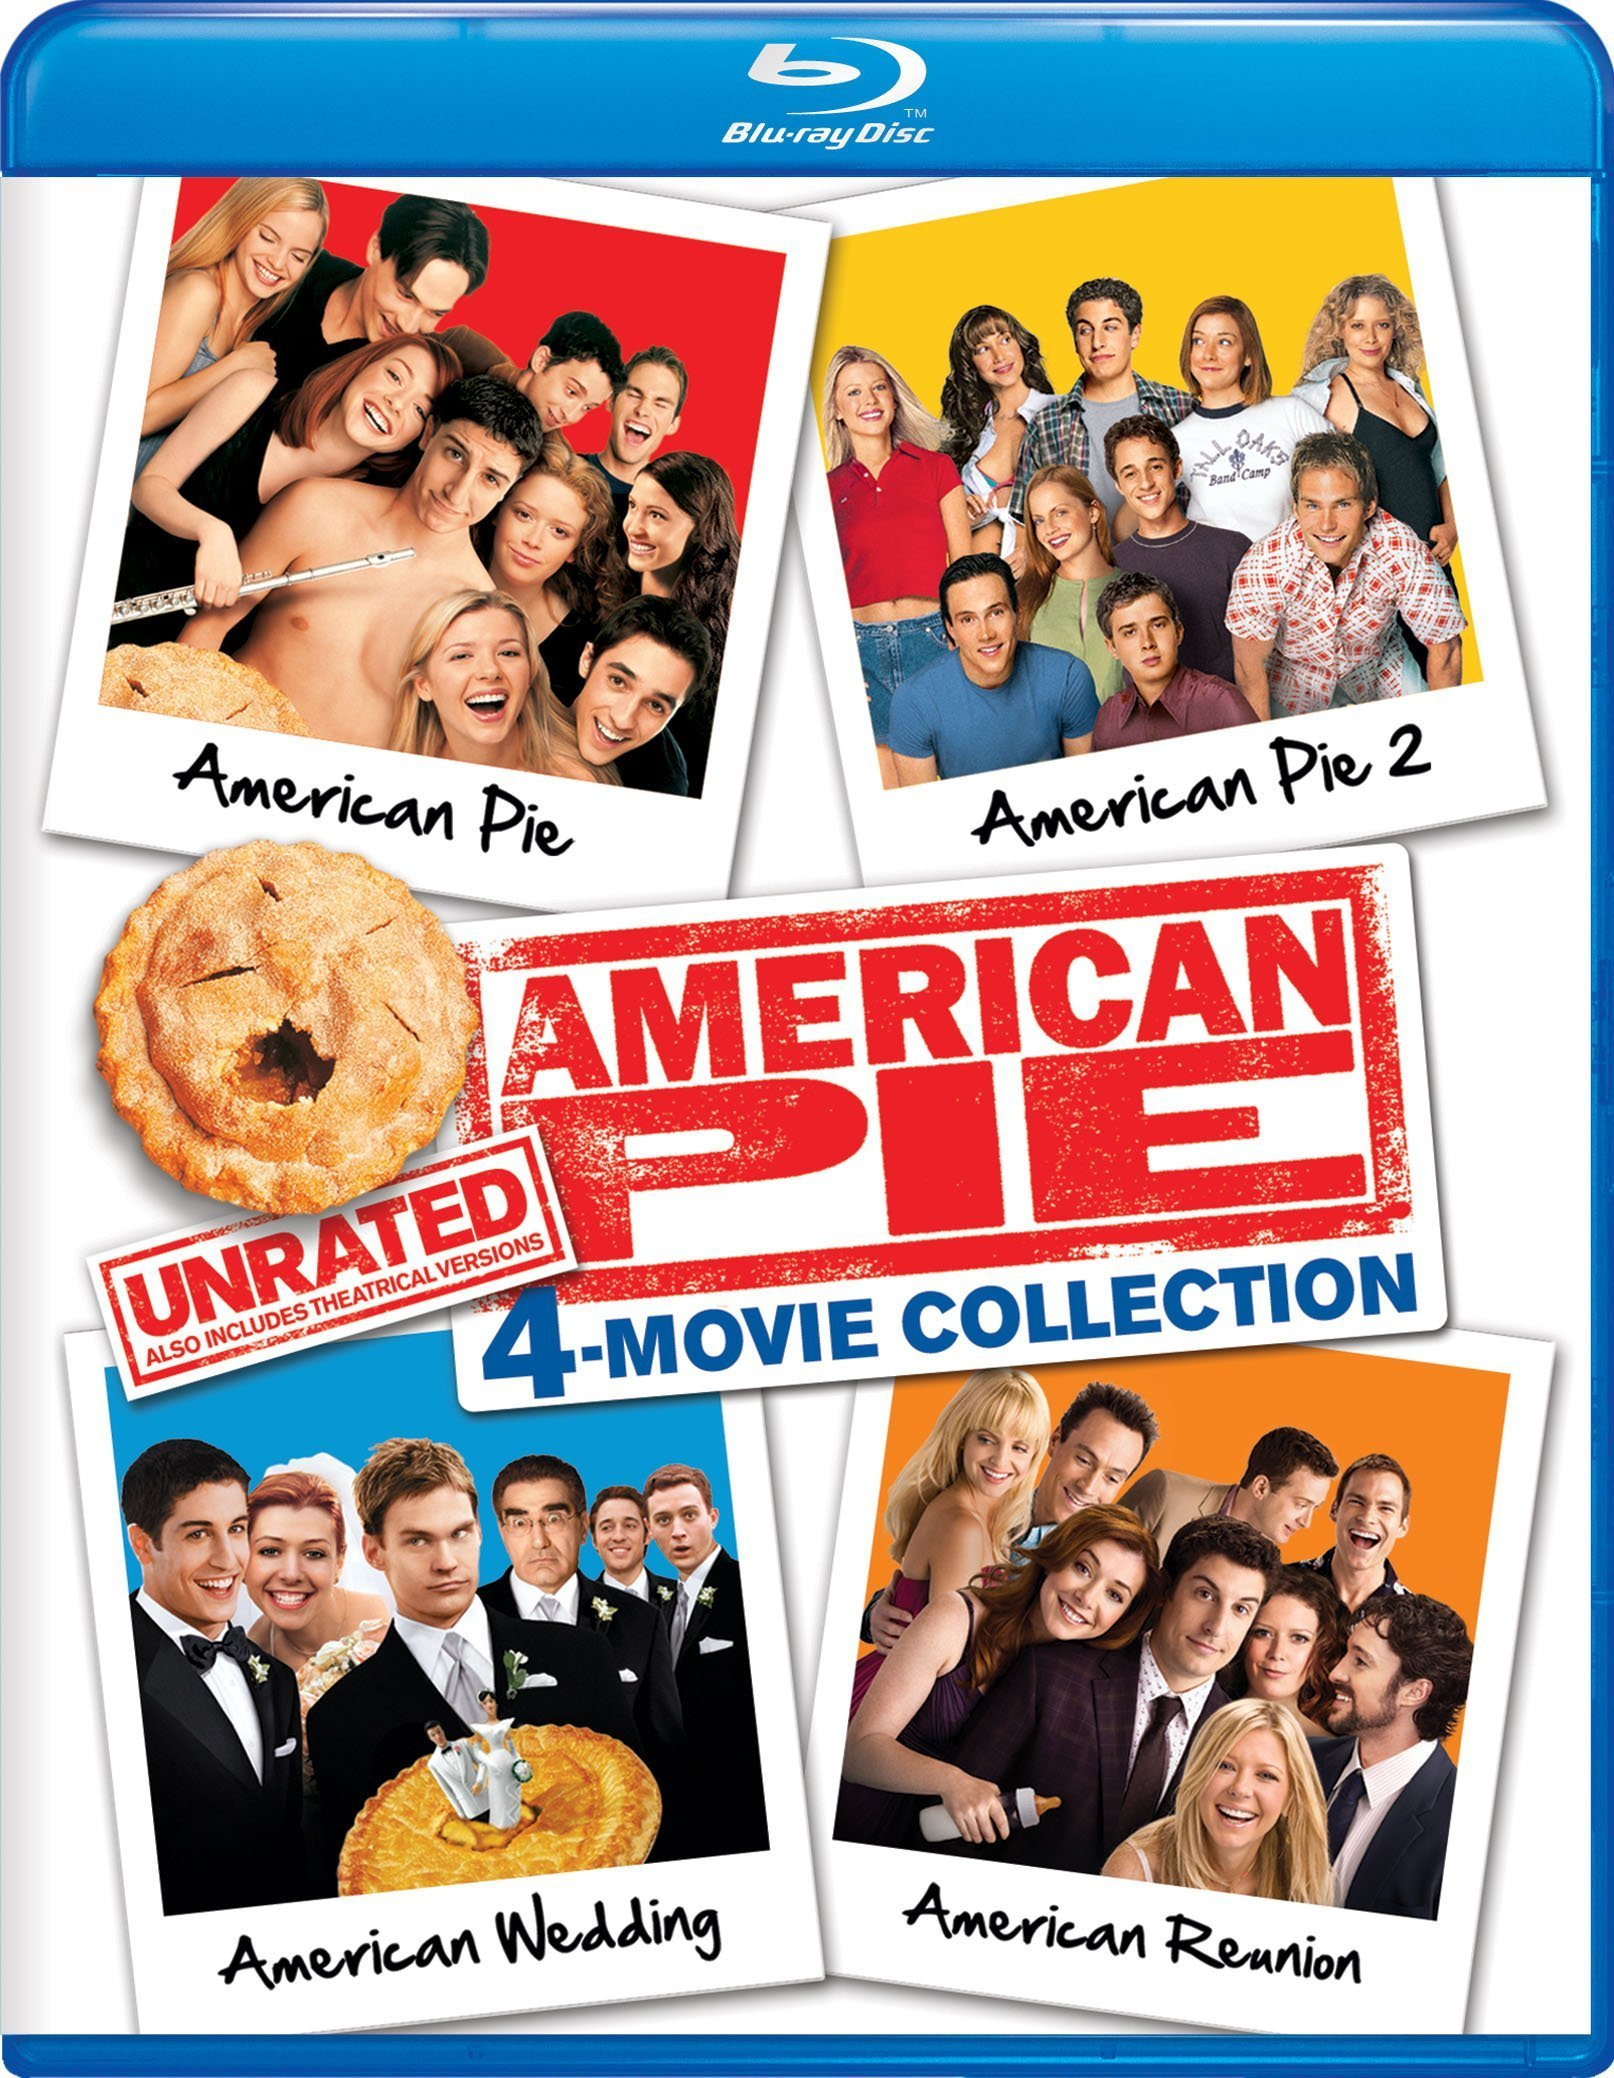 American Pie Unrated 4-Movie Collection (1999-2012) Blu-ray